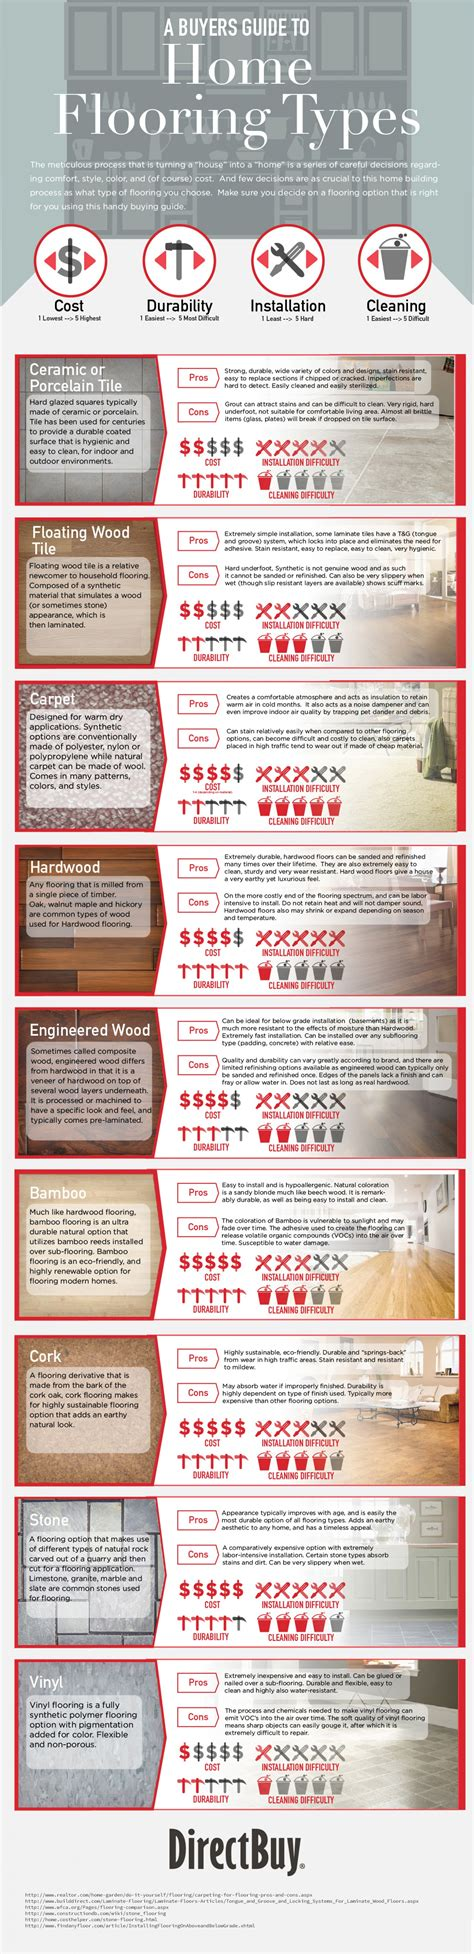 Different Types Of Floor Boards by The Pros And Cons Of Different Types Of Home Flooring